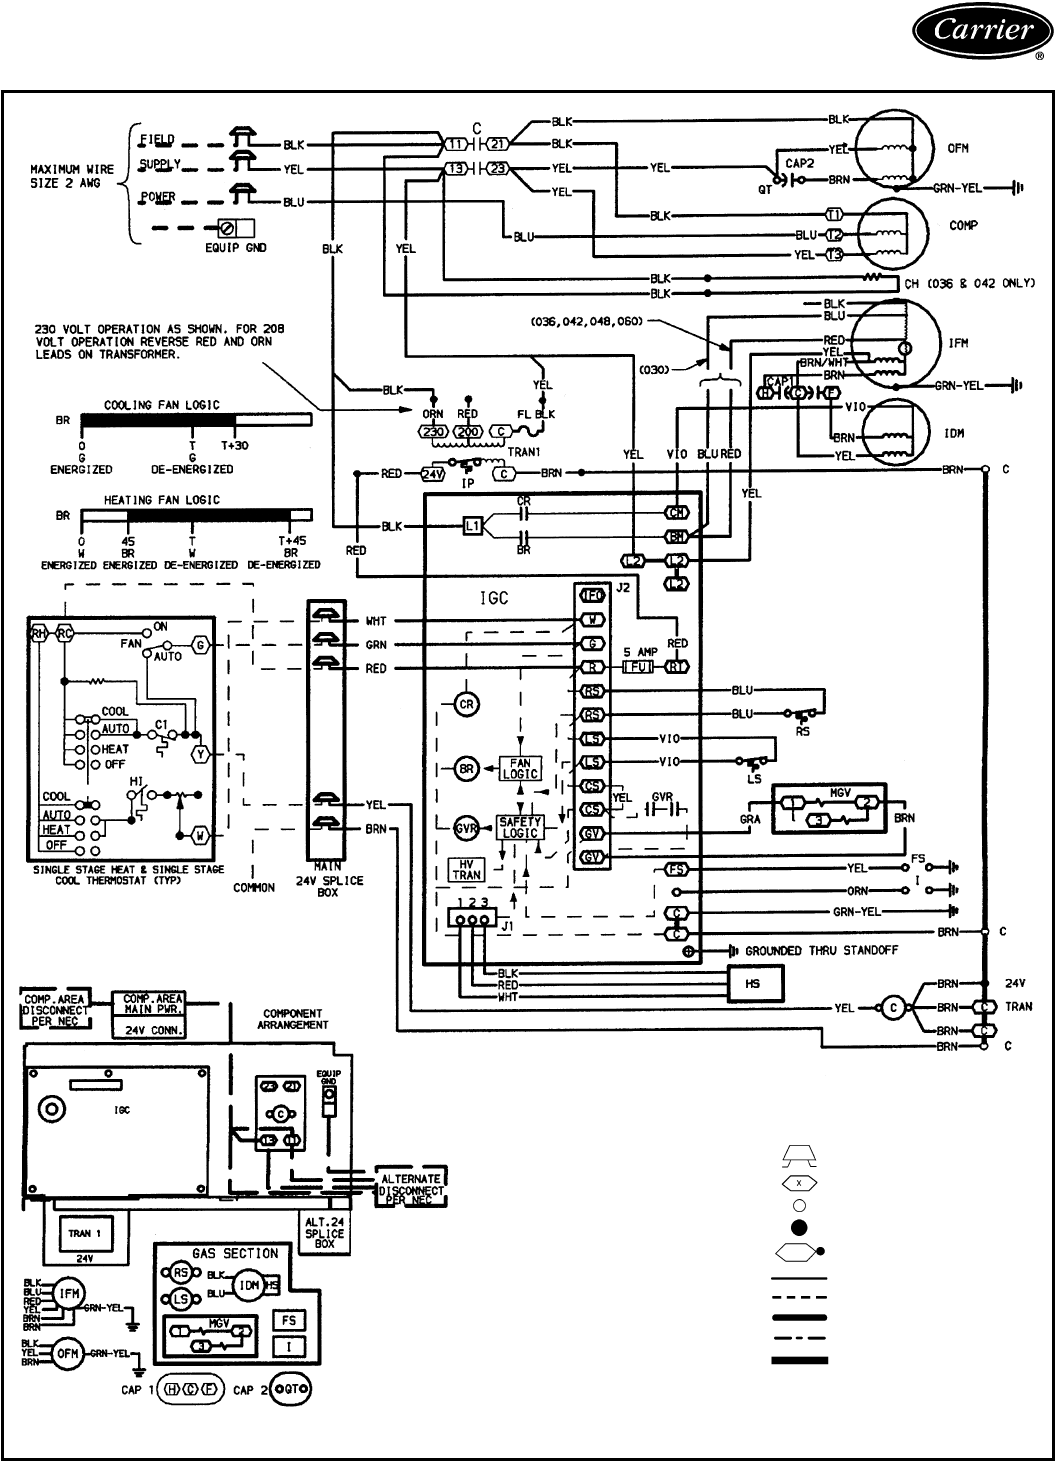 [SCHEMATICS_4US]  LG_9295] Wiring Diagrams Also Carrier Air Conditioner Parts On Carrier Air  Download Diagram | Wiring Diagram Of Split Type Aircon Carrier |  | Terst Stica Cette Mohammedshrine Librar Wiring 101